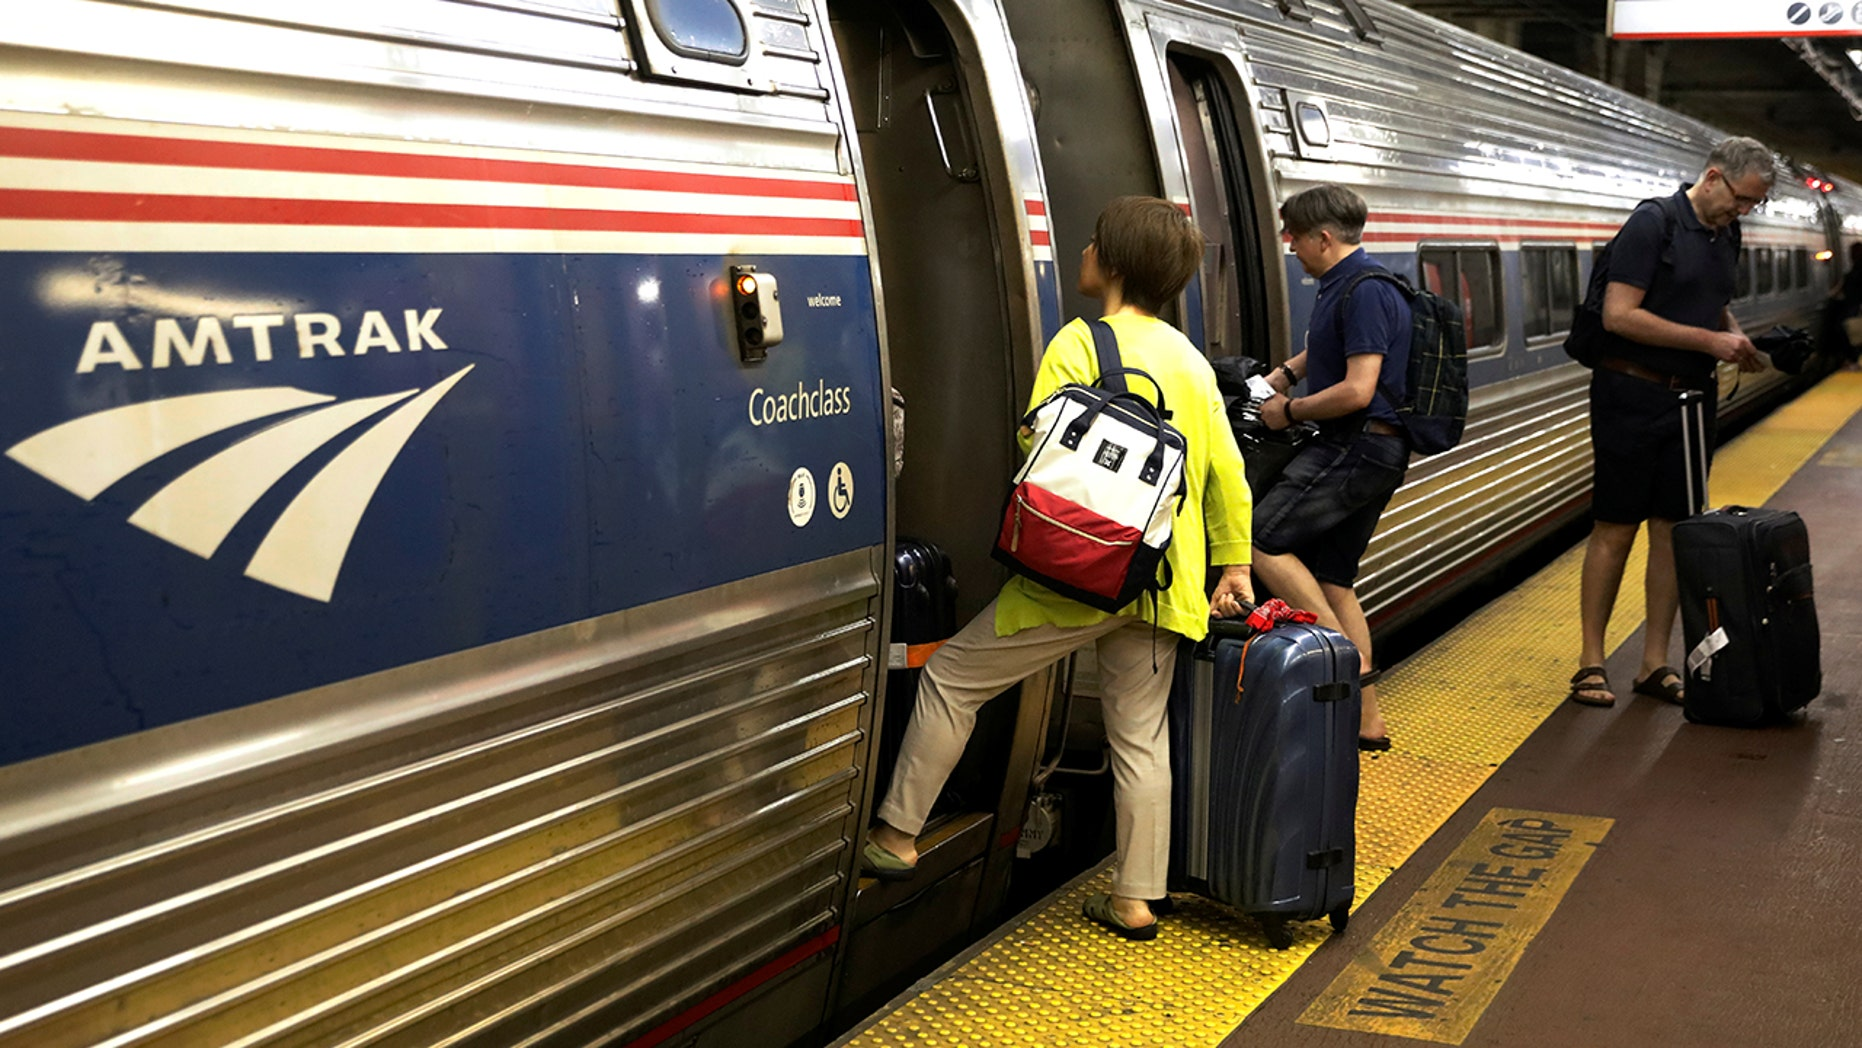 Amtrak riders board a train at Penn Station in New York City in an undated photo.